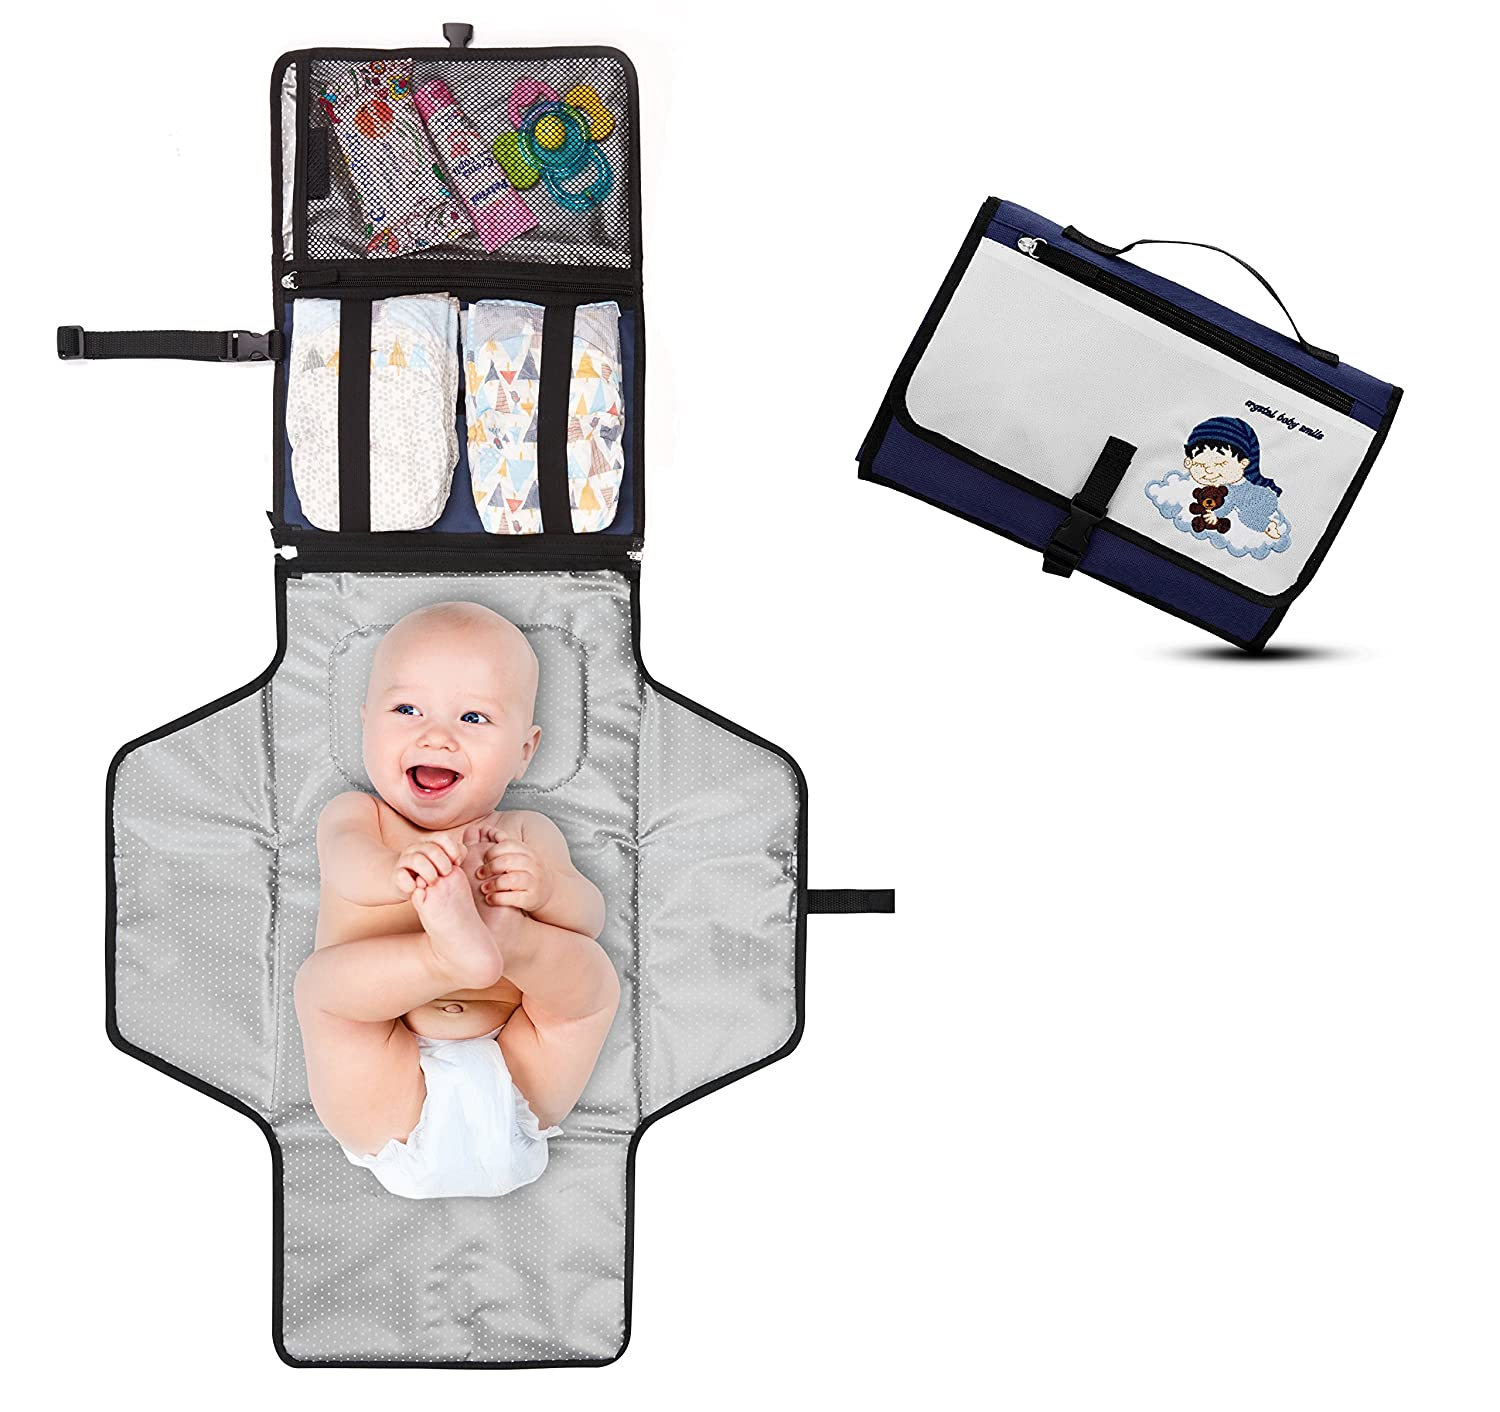 Portable Diaper Changing Pad - Premium Quality Travel Changing Station Kit